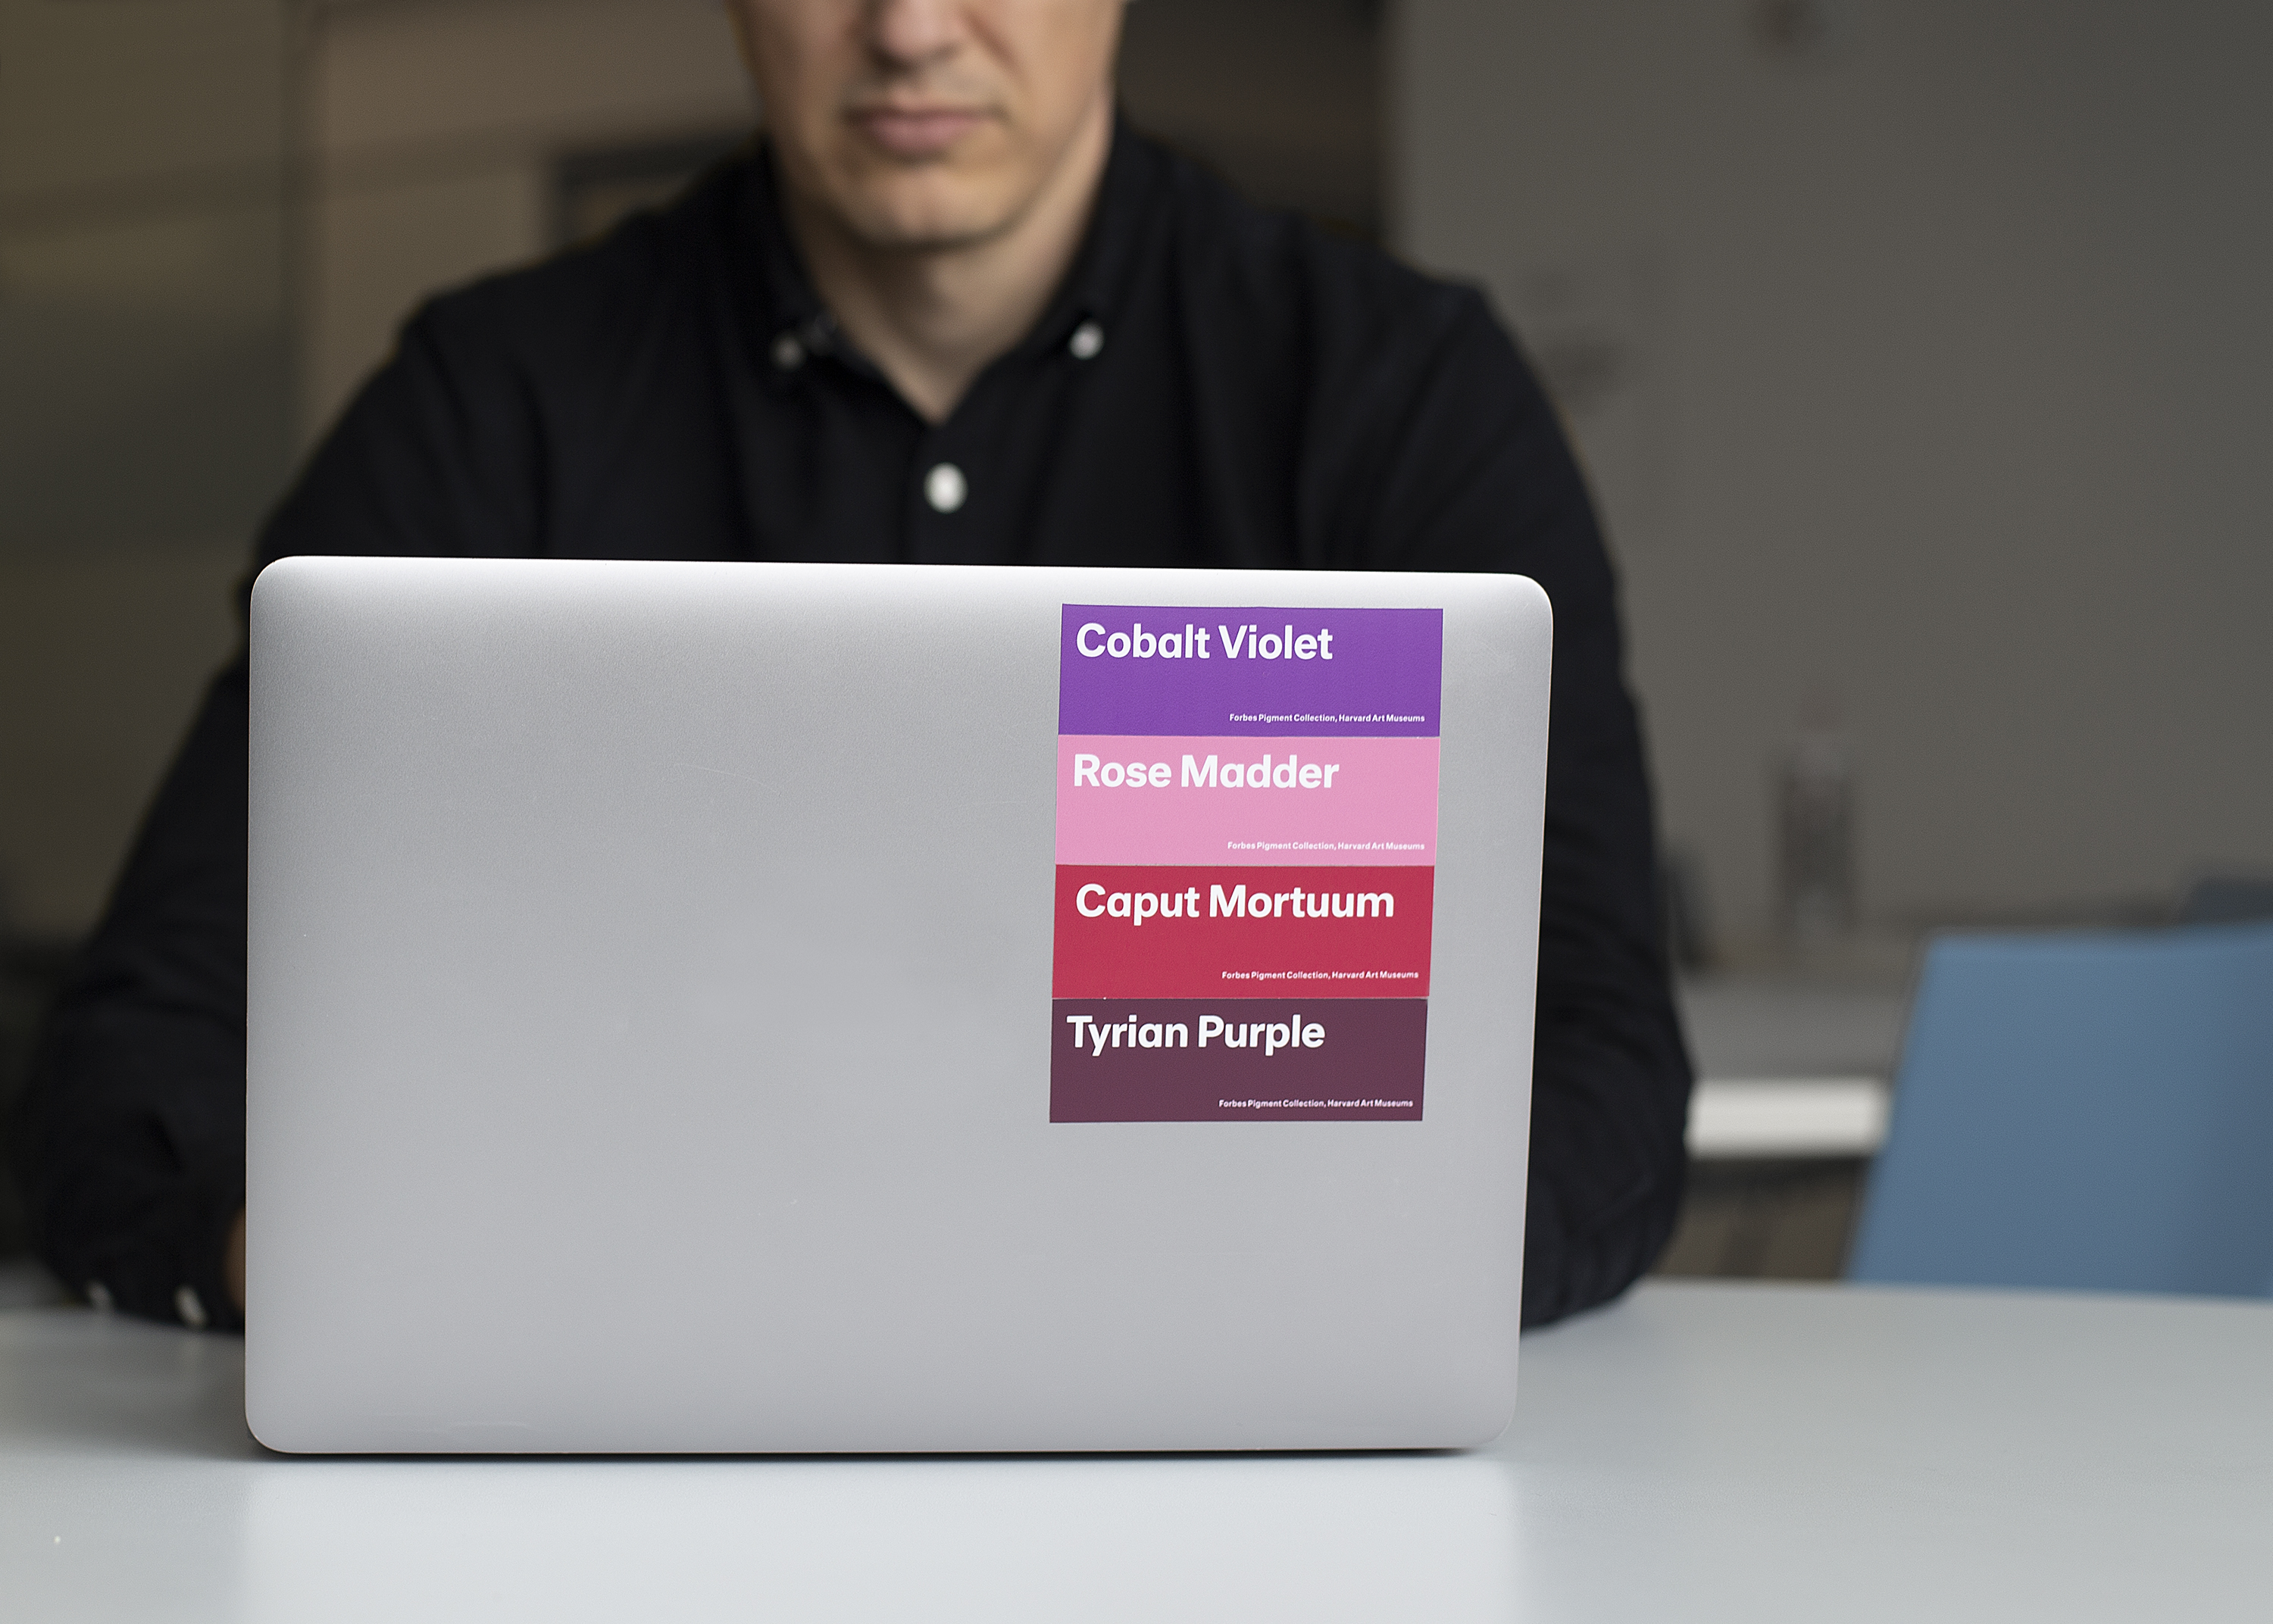 A man sits at a laptop, his face cropped in the photo. There are four stickers on his laptop, labeled from top to bottom: Cobalt Violet (light purple), Rose Madder (pink), Caput Mortuum (dark red), and Tyrian Purple (purple).